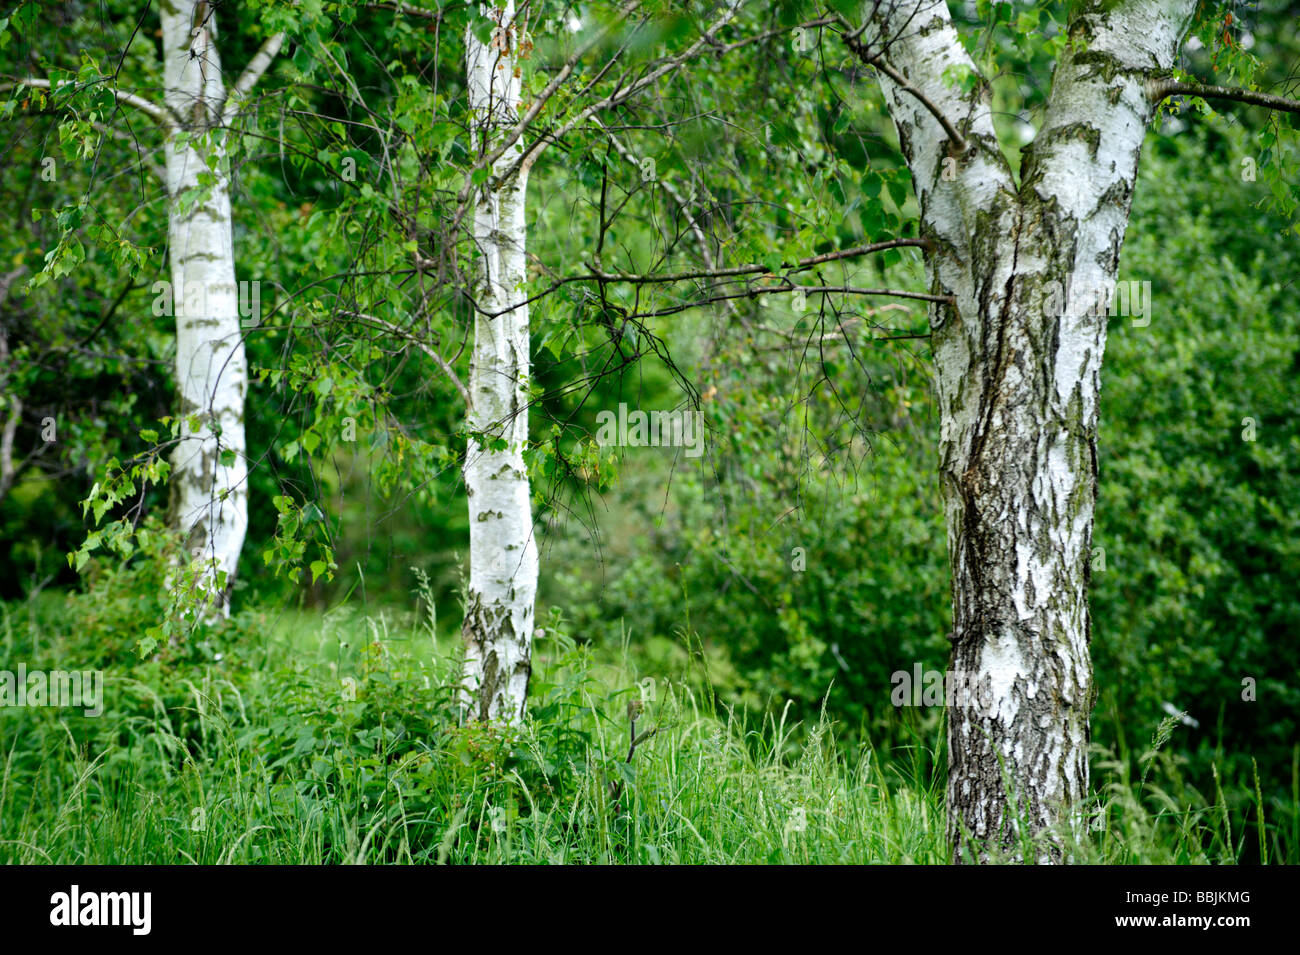 Small Copse Of Silver Birch Trees Stock Photo Royalty